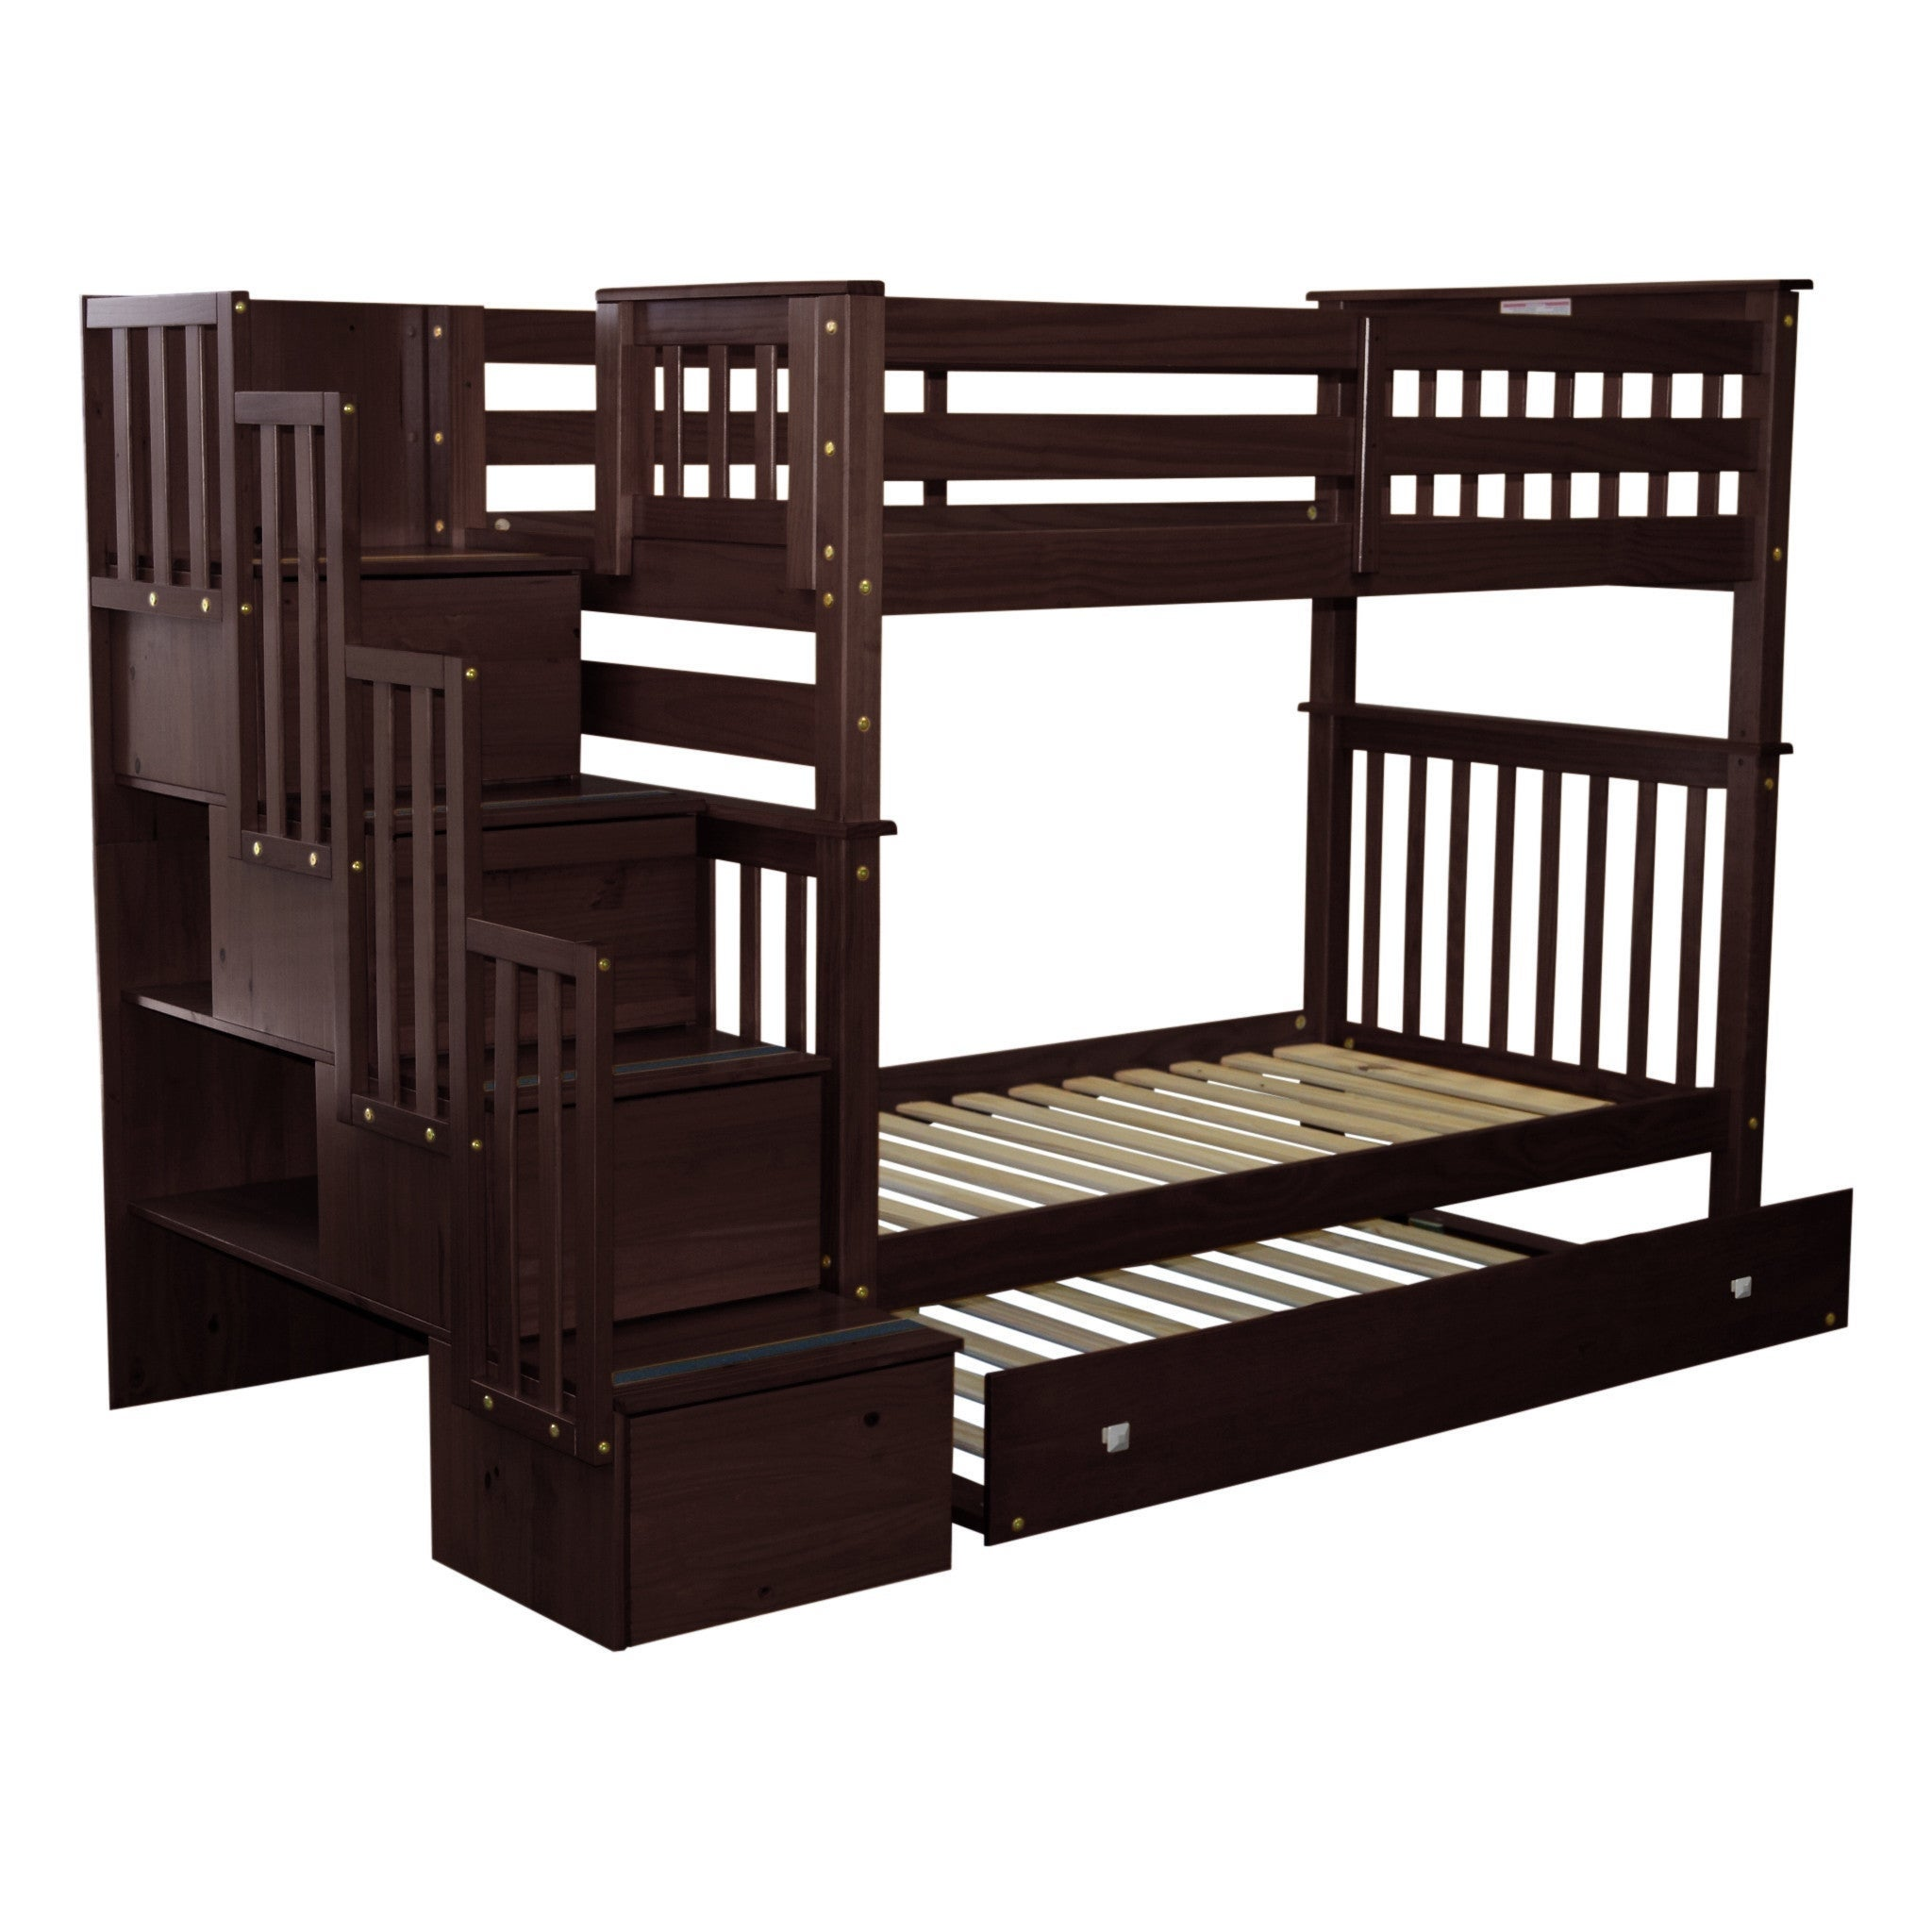 Picture of: Bedz King Bunk Beds Twin Over Twin Stairway 4 Drawers Twin Trundle Cappuccino Overstock 14229156